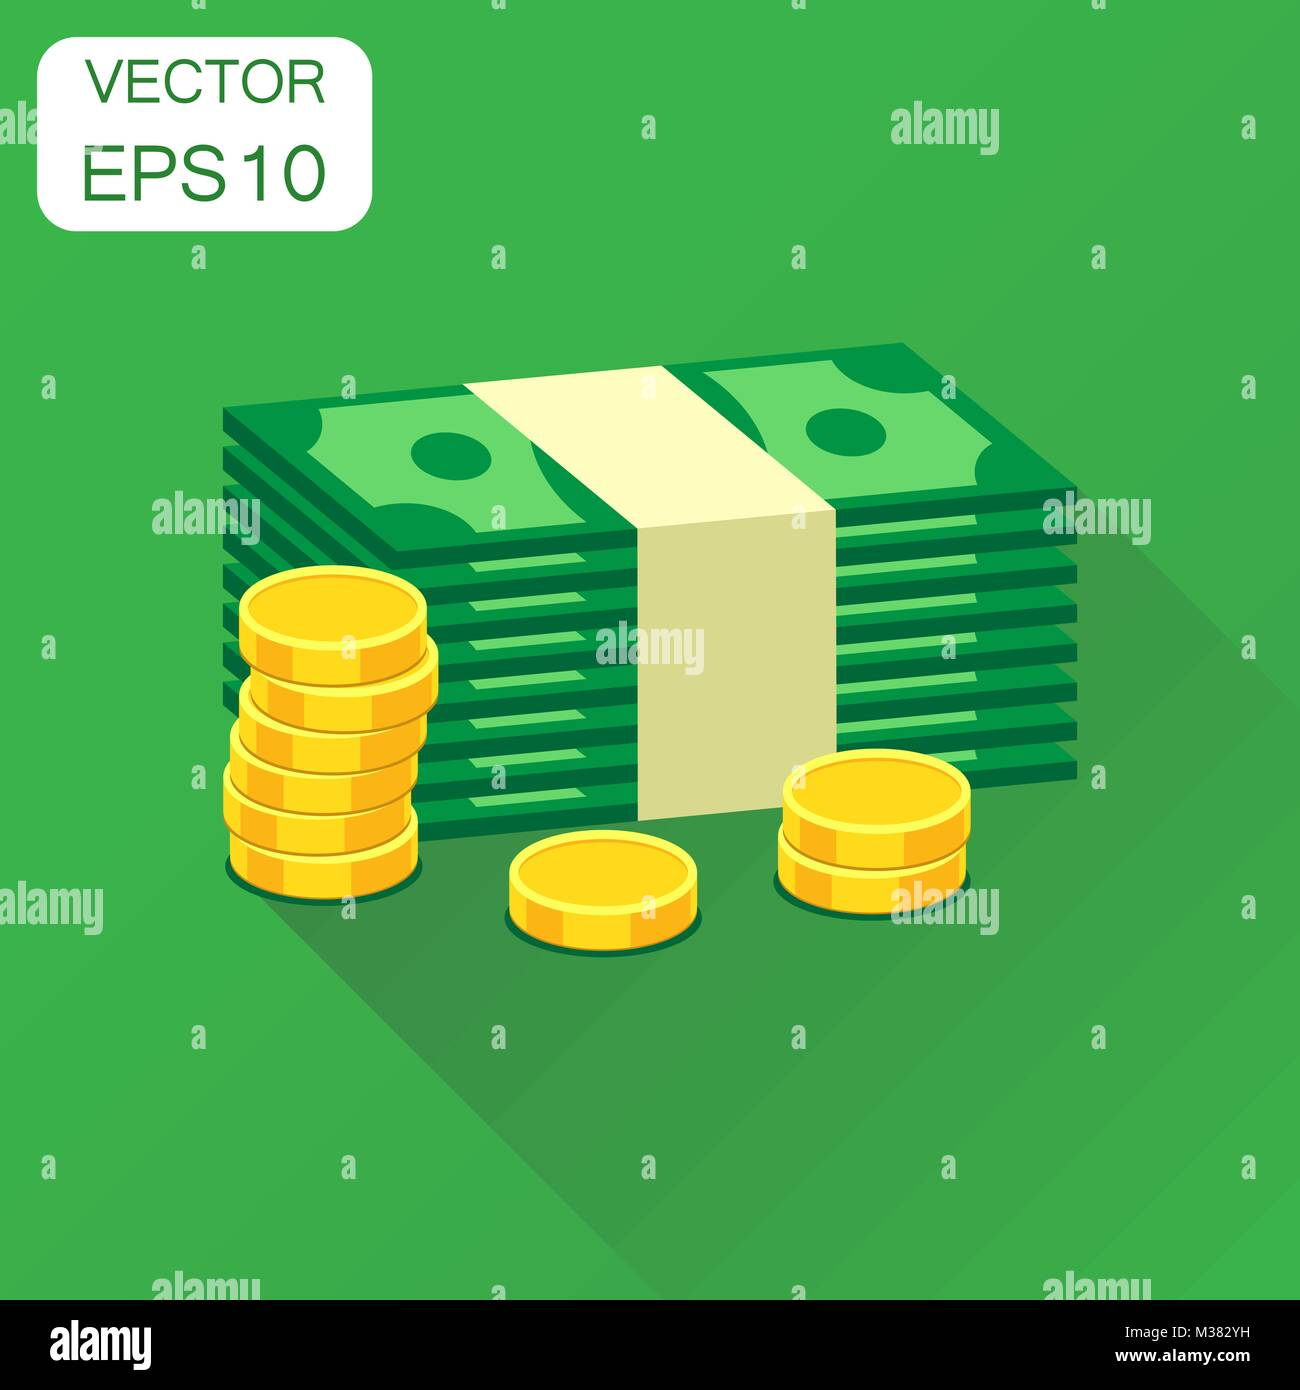 Stacks of gold coins and stacks of dollar cash icon. Business concept money pictogram. Vector illustration on green - Stock Vector